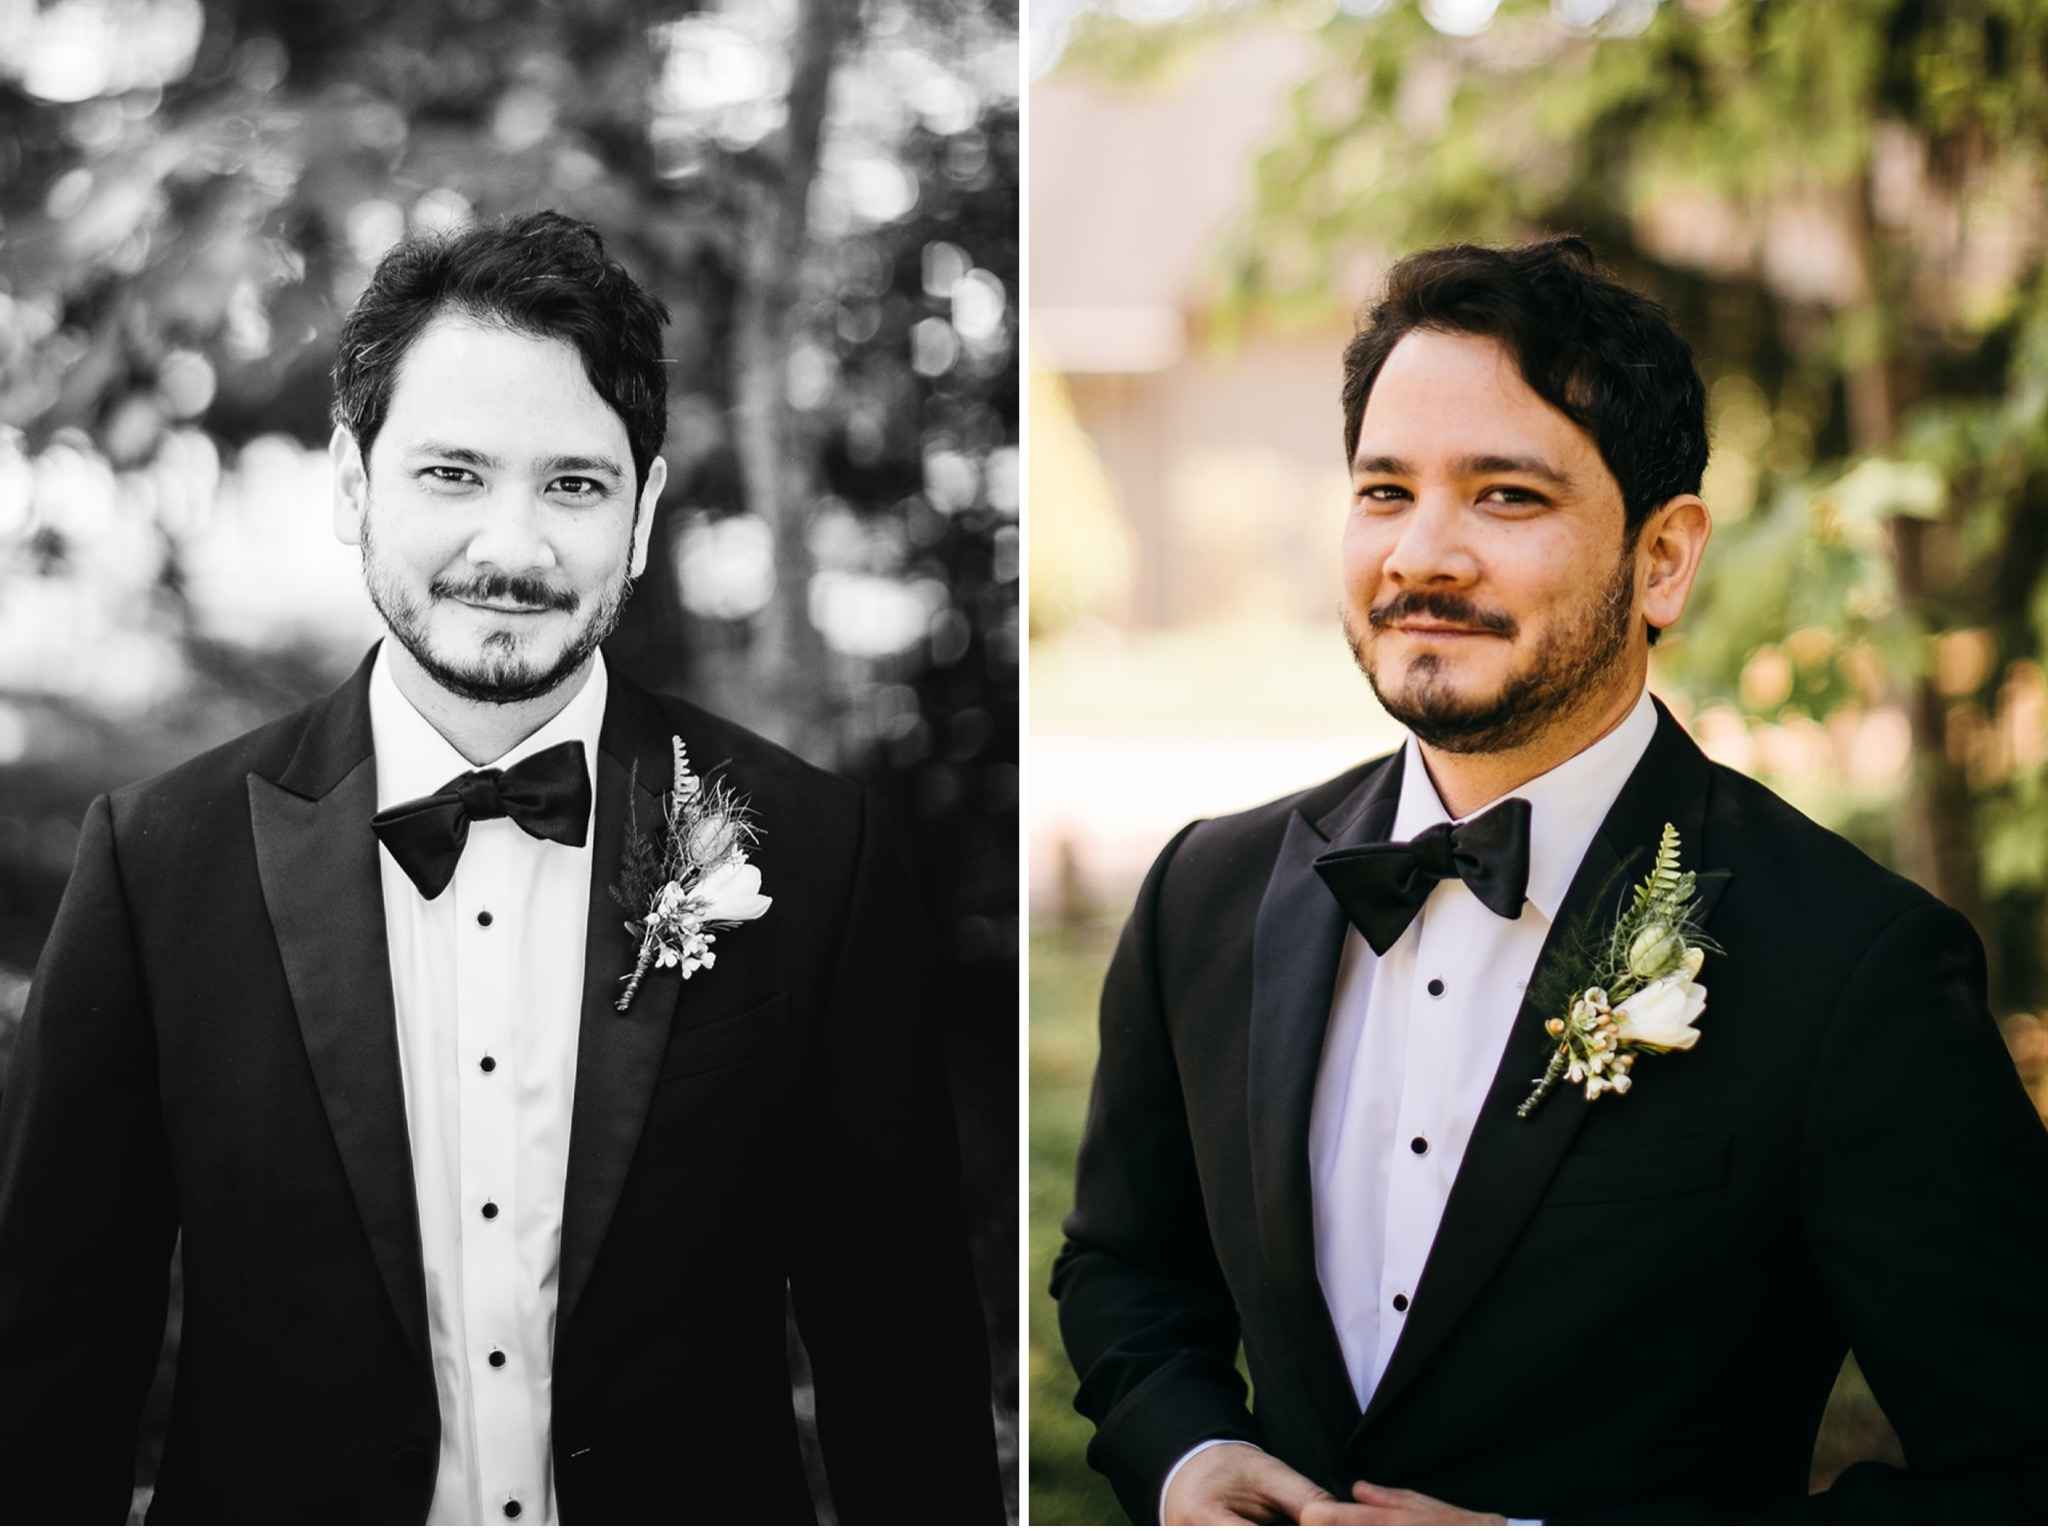 groom buttons his black tuxedo suit coat and smiles